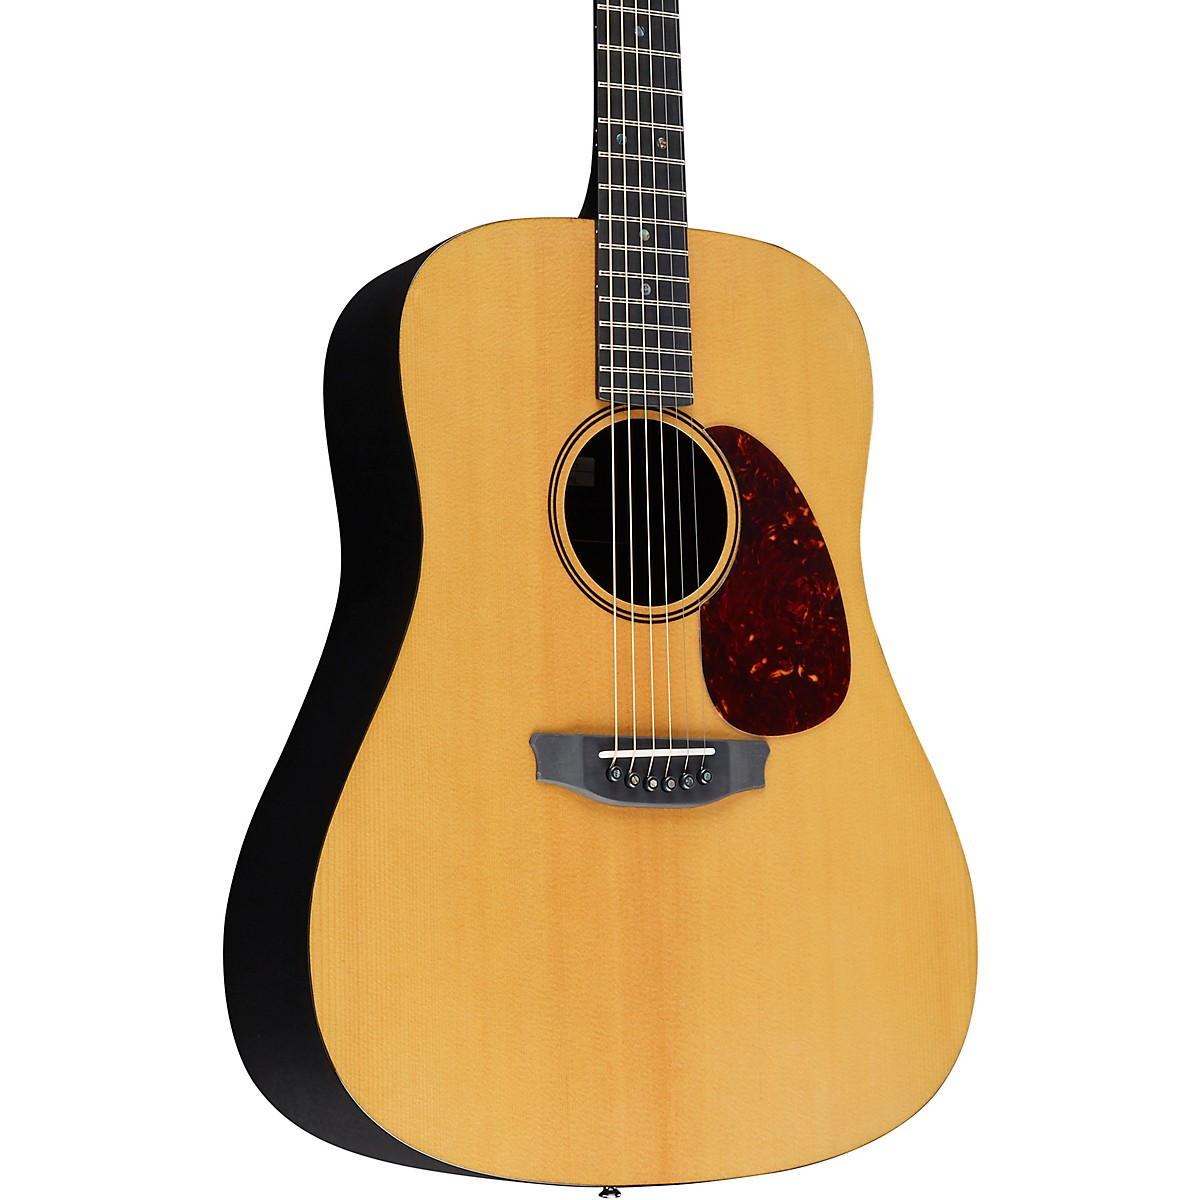 RainSong V-DR1100N2 Vintage Series Dreadnought Acoustic Guitar